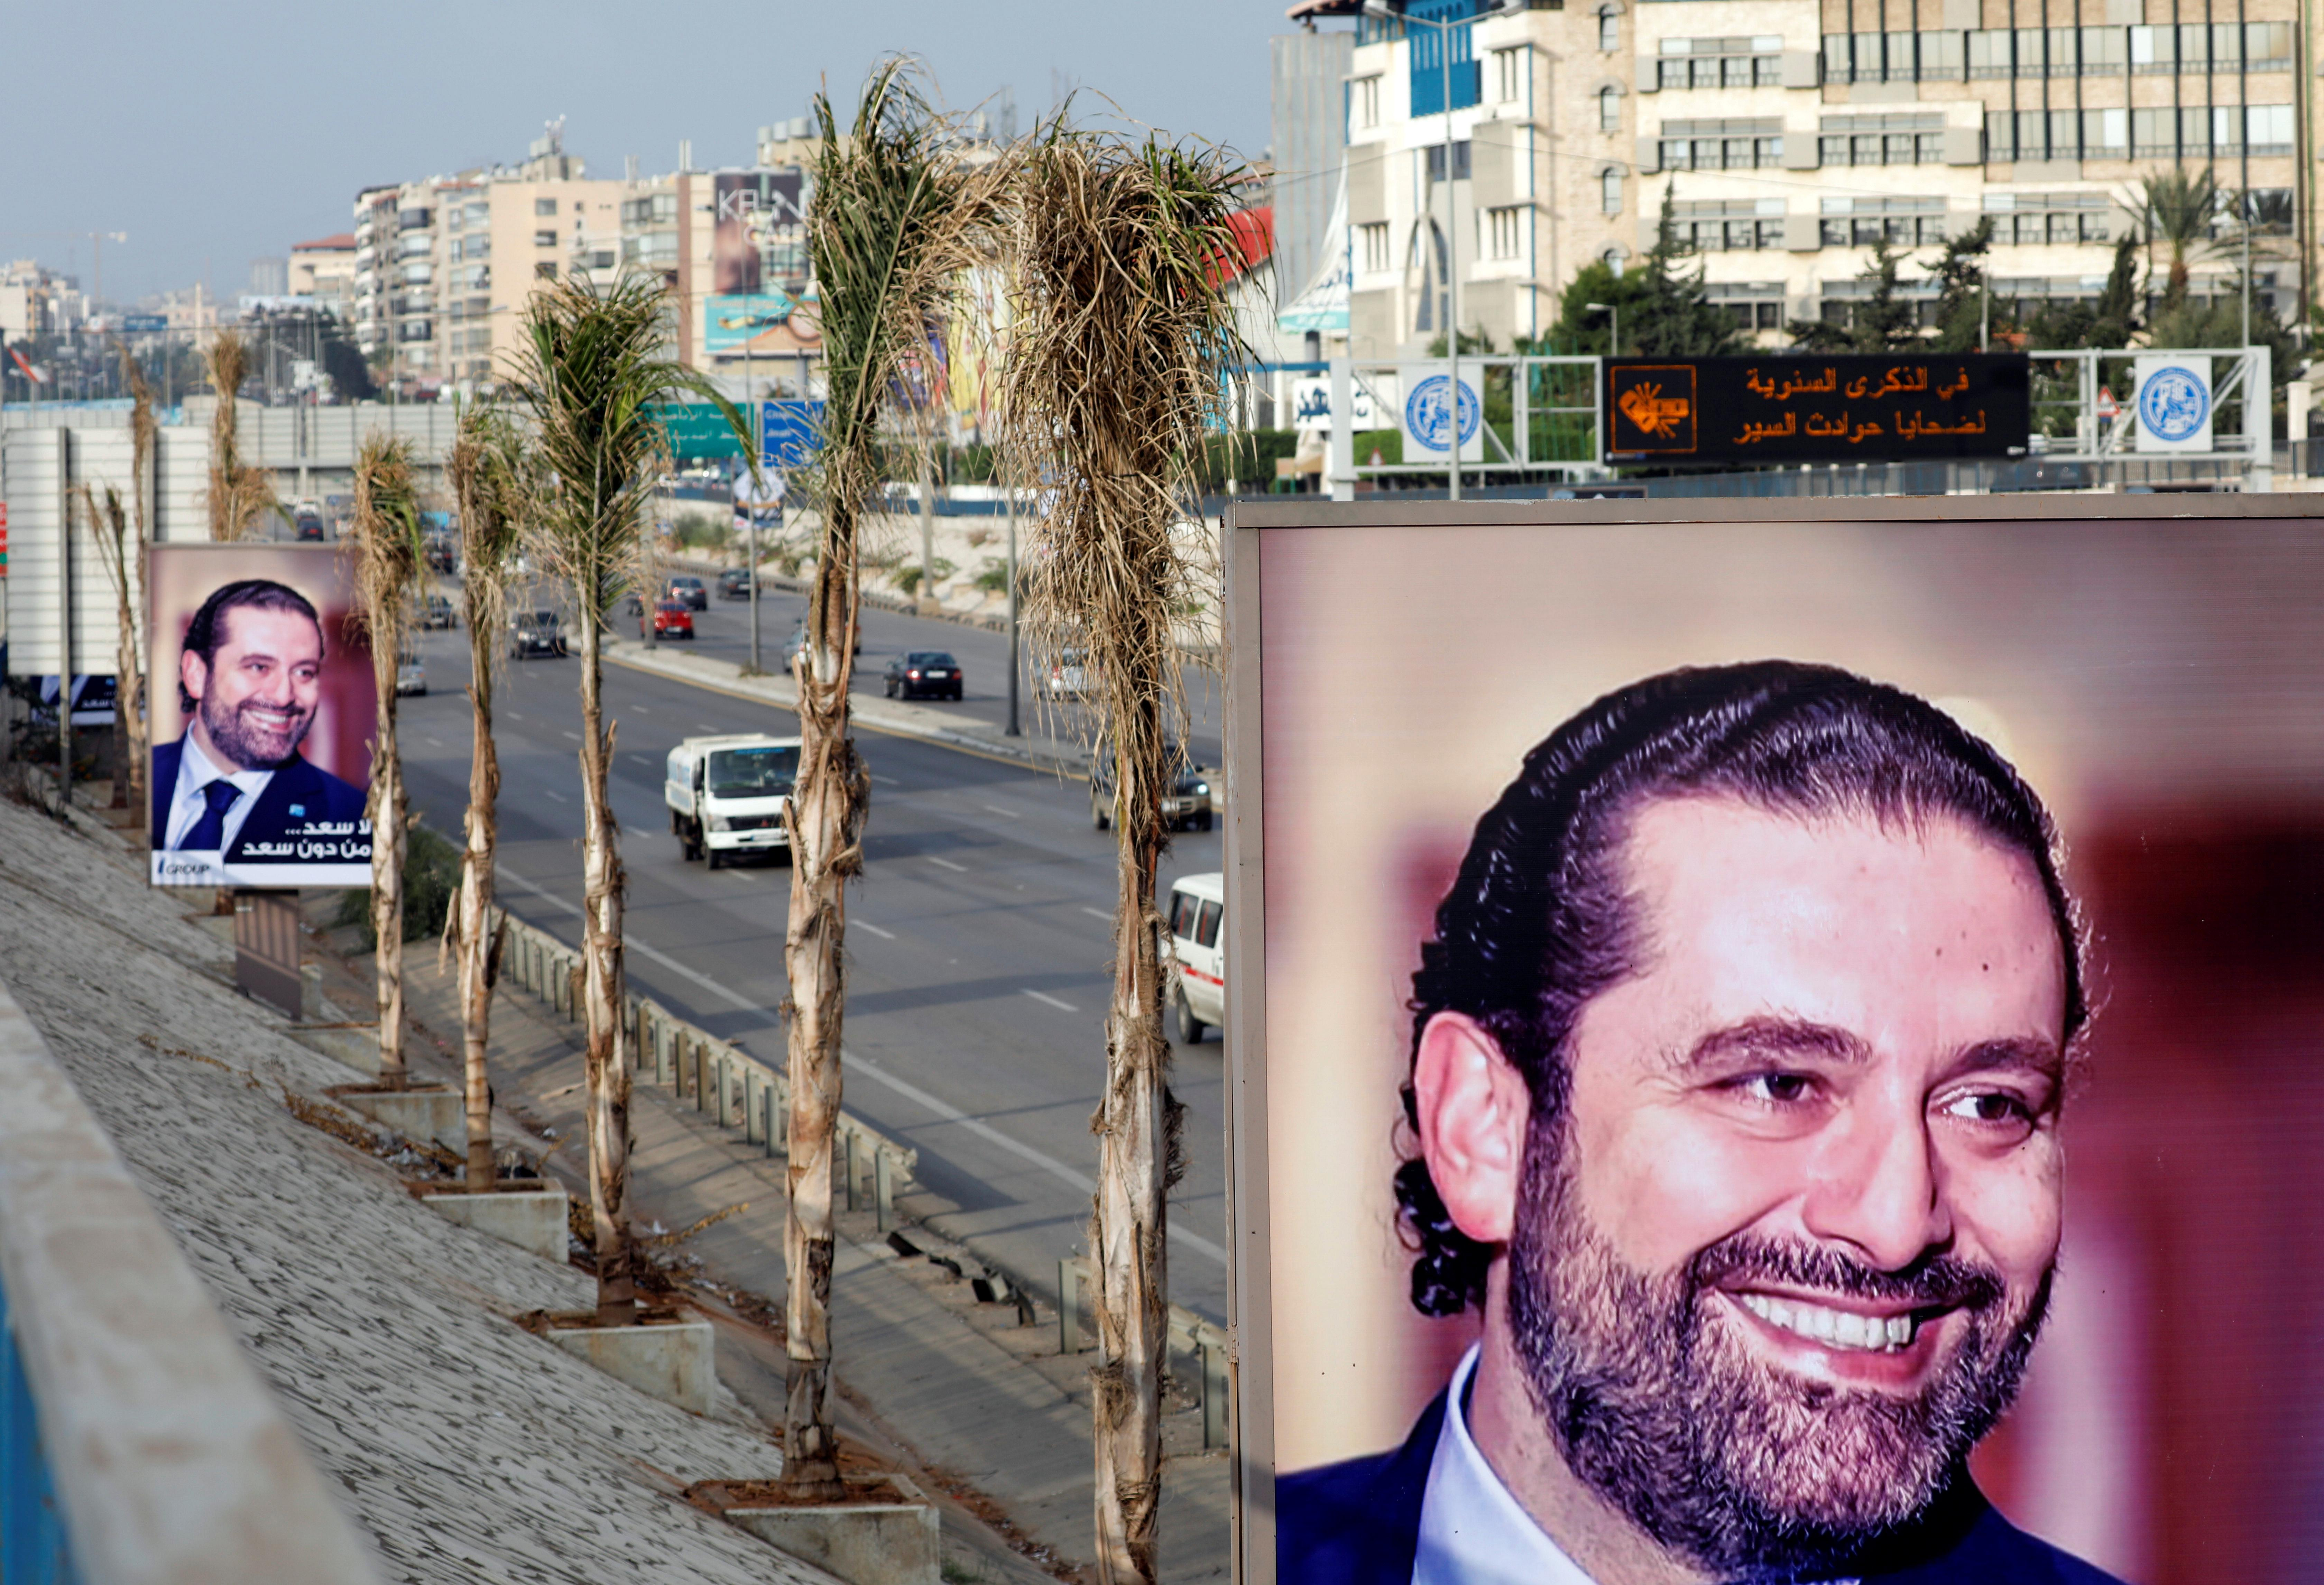 Posters showing Saad al-Hariri are displayed on the airport highway in the Lebanese capital of Beirut,. Hariri returned to Lebanon for Independence Day celebrations after announcing his resignation as prime minister while on a trip to Saudi Arabia. Jamal Saidi